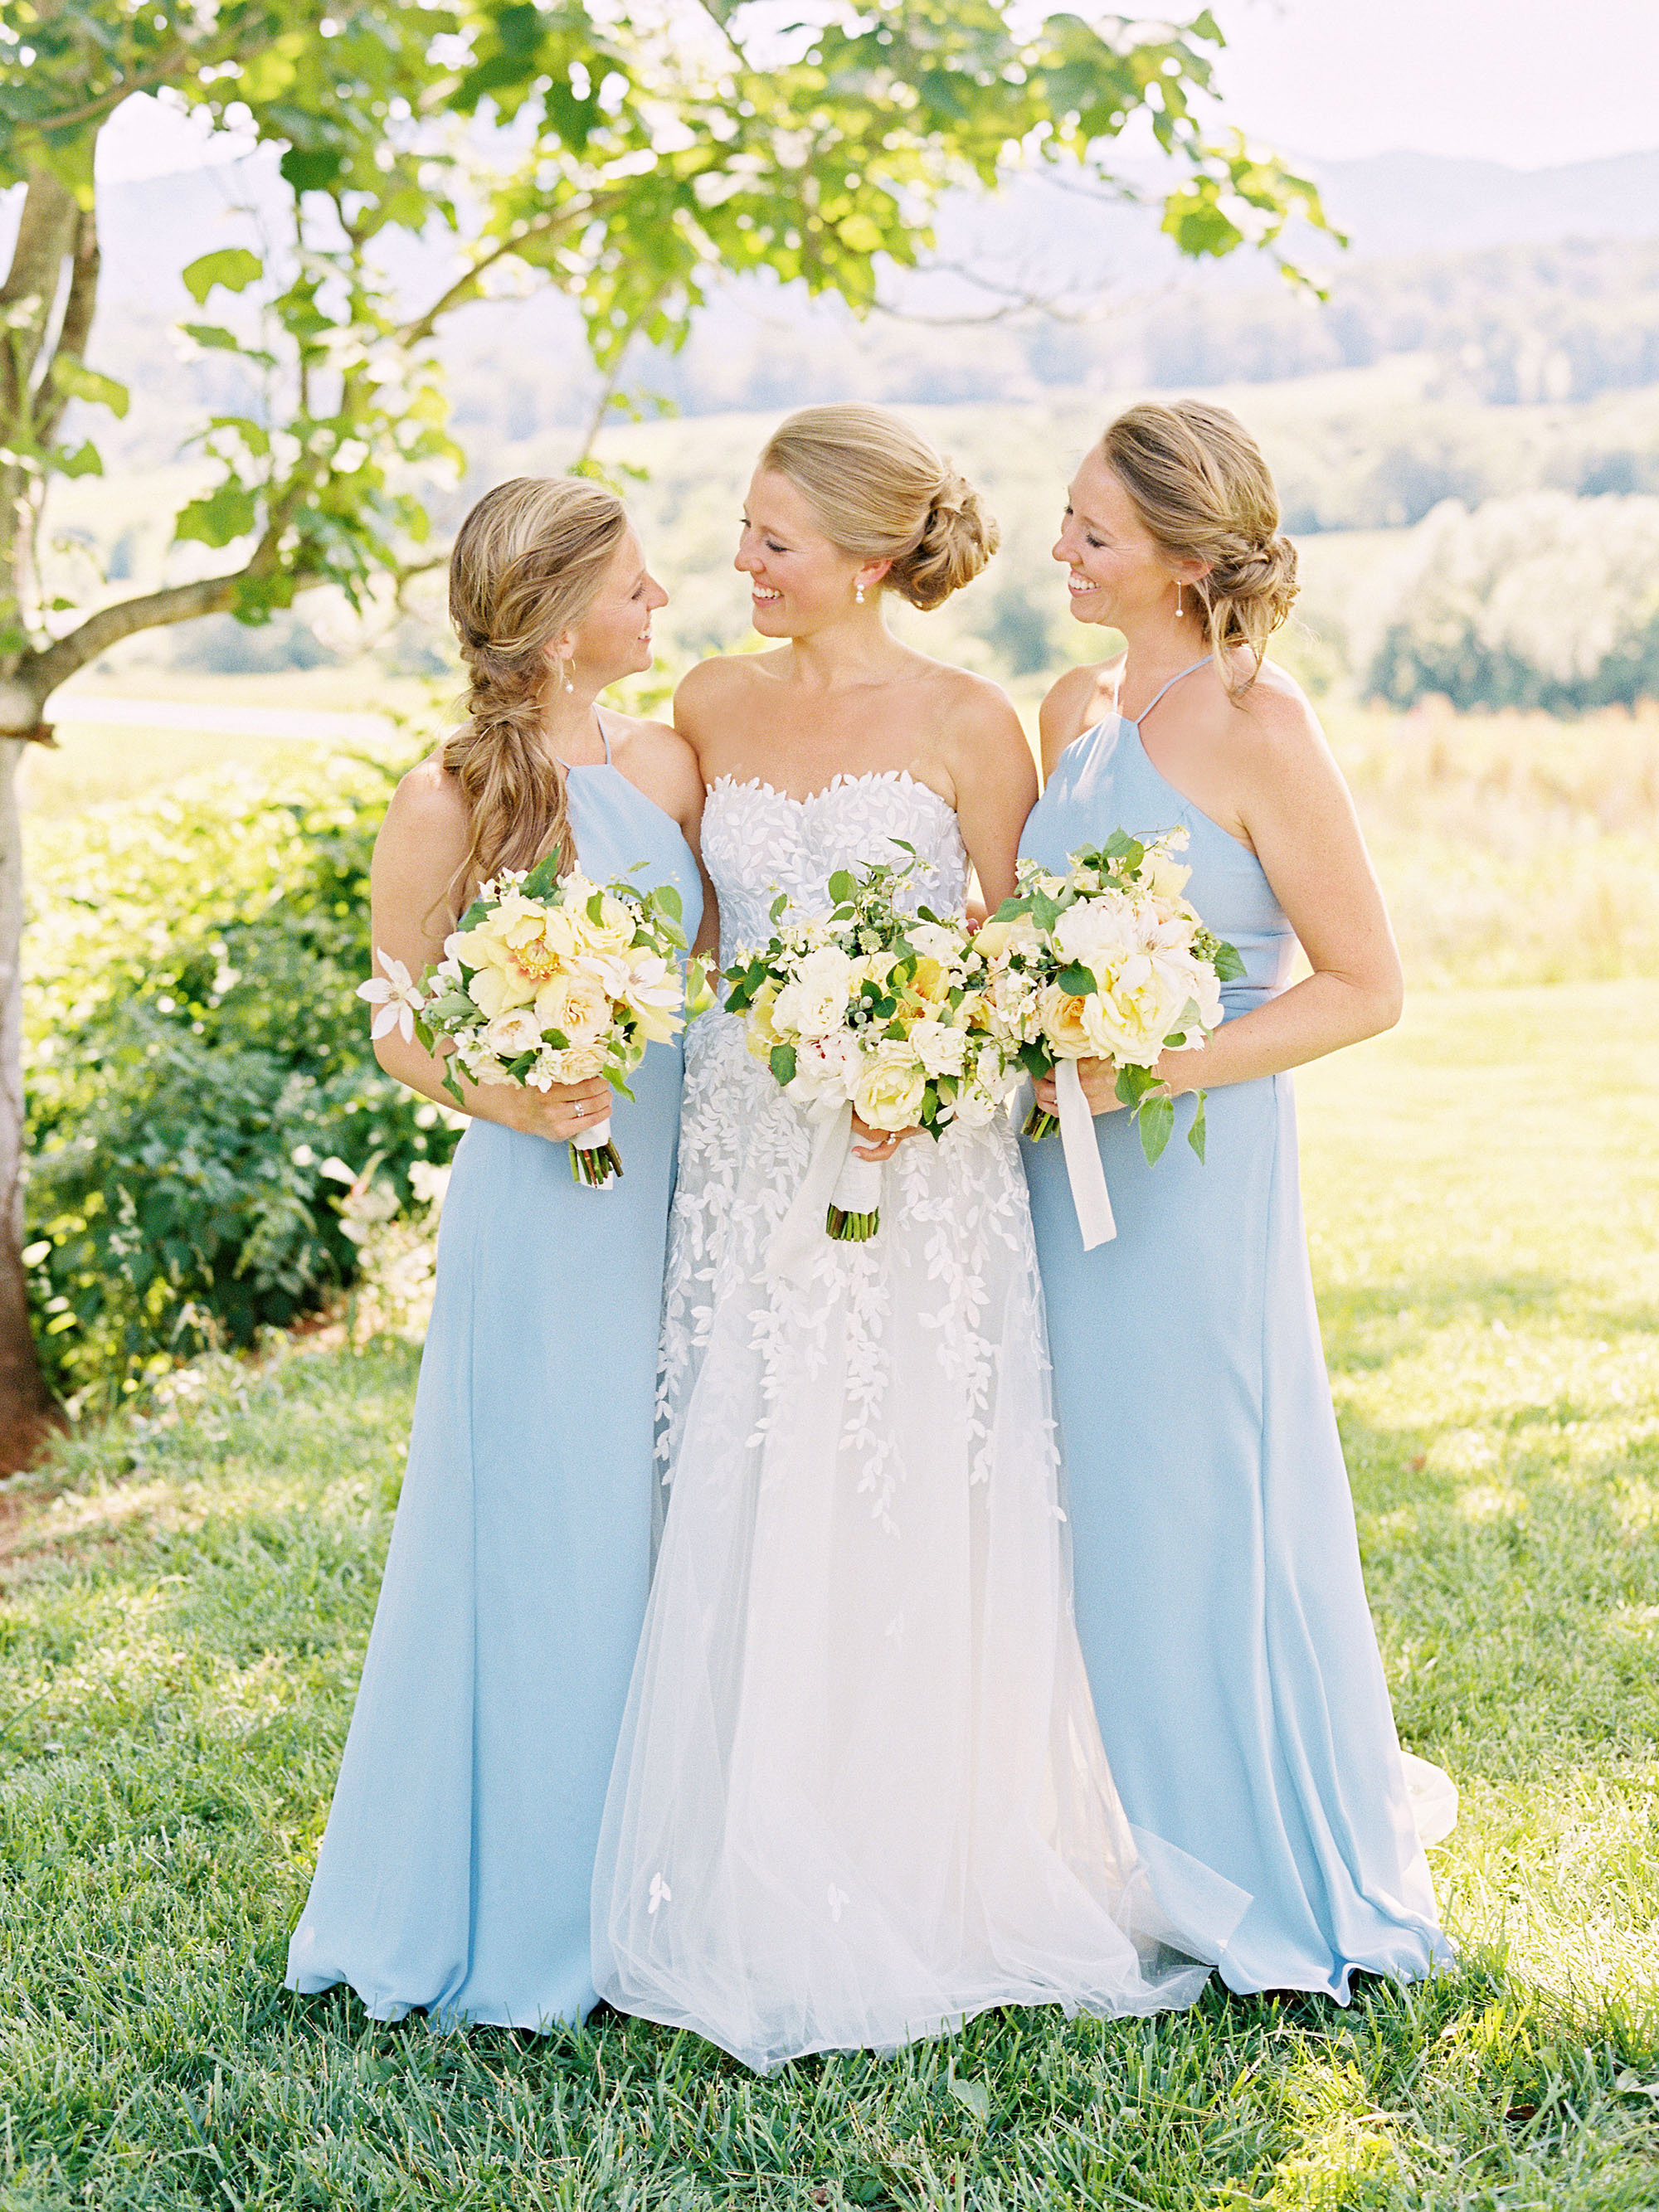 What It's Really Like When a Younger Sibling Gets Married First